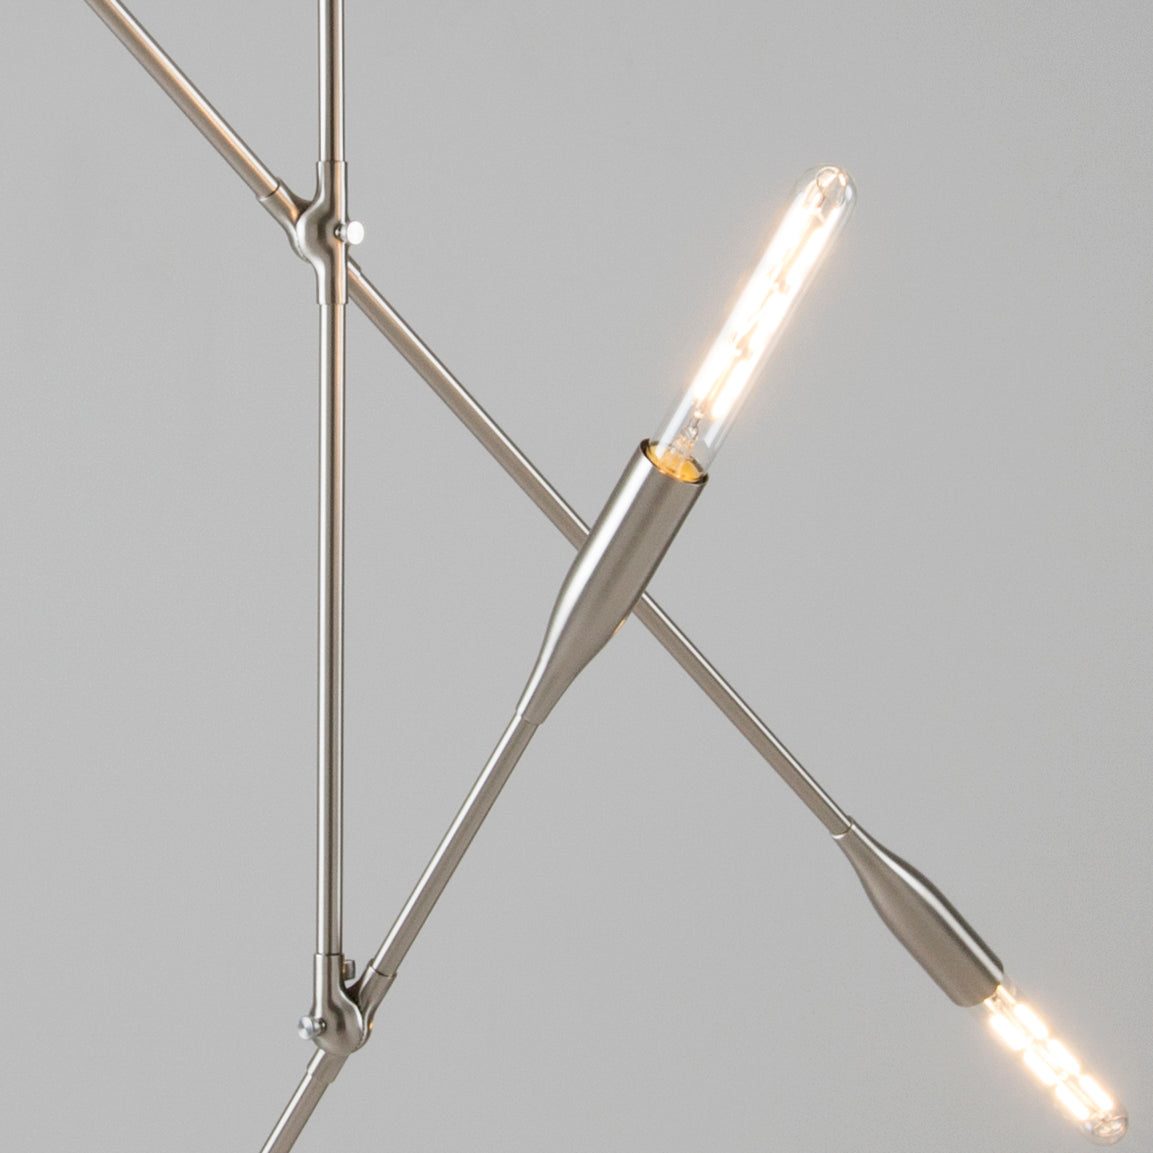 Sorenthia 2-Arm Light in Brushed Nickel Close Up View of crossing lighting arms by Studio DUNN